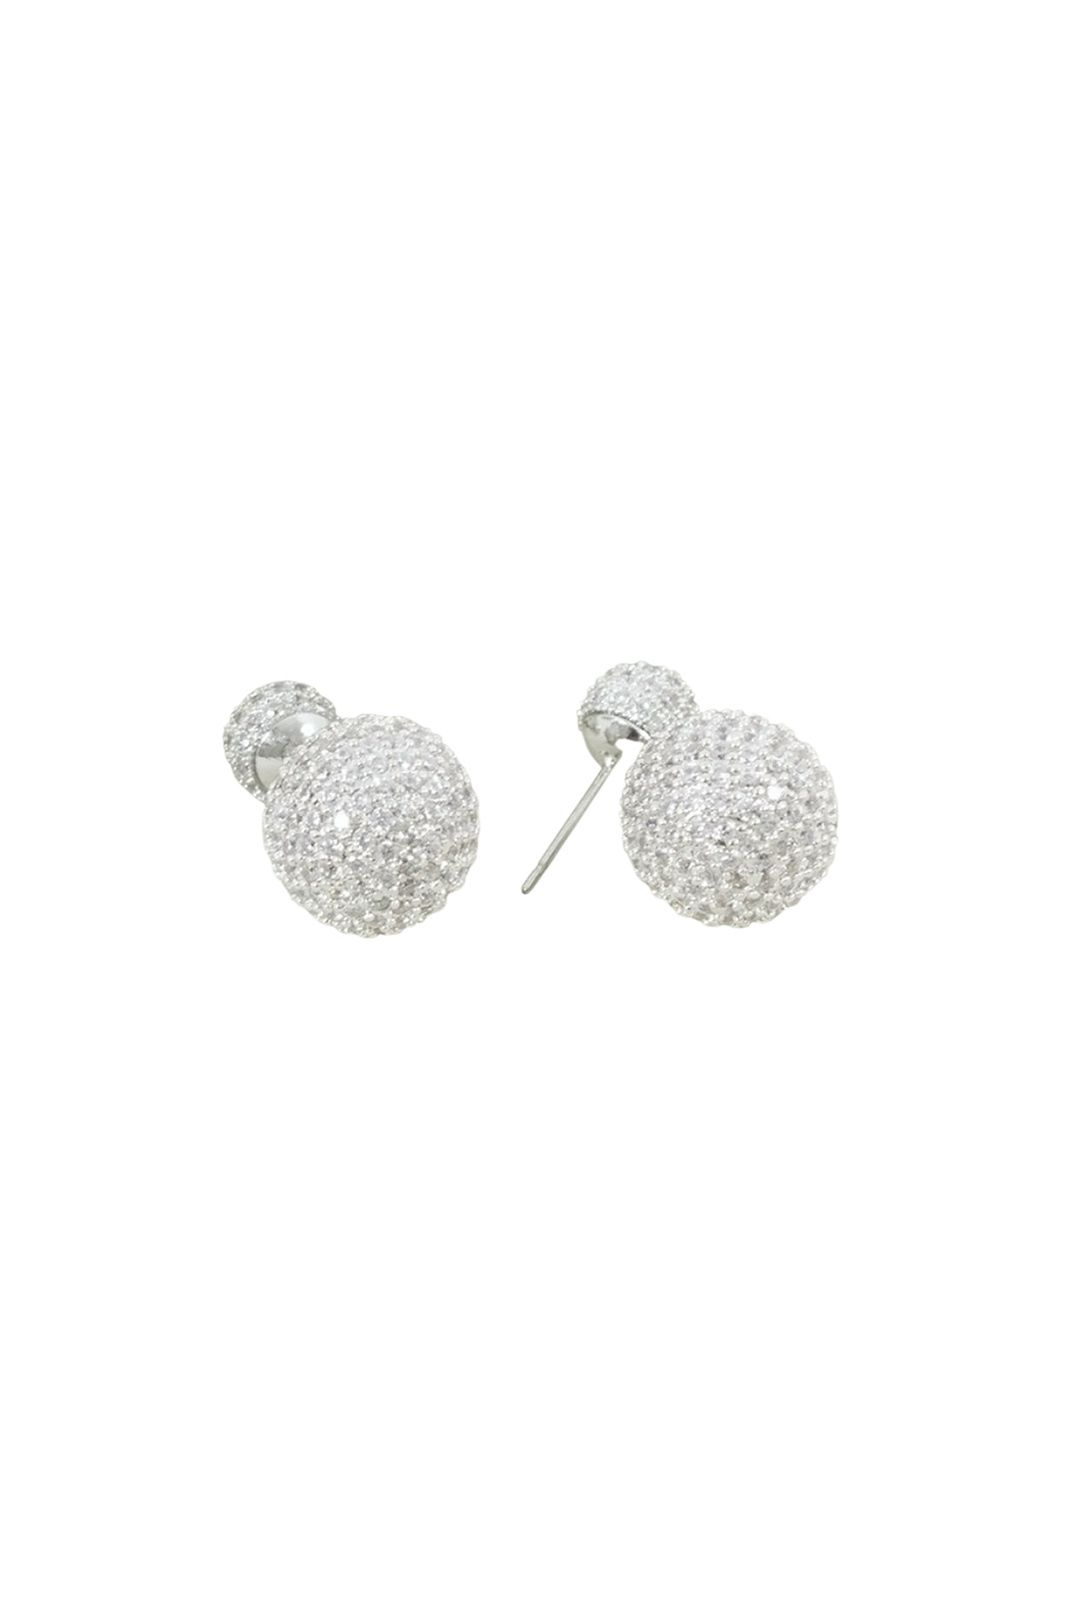 Adorne - Diamante Double Ball Stud Earring - Silver - Front